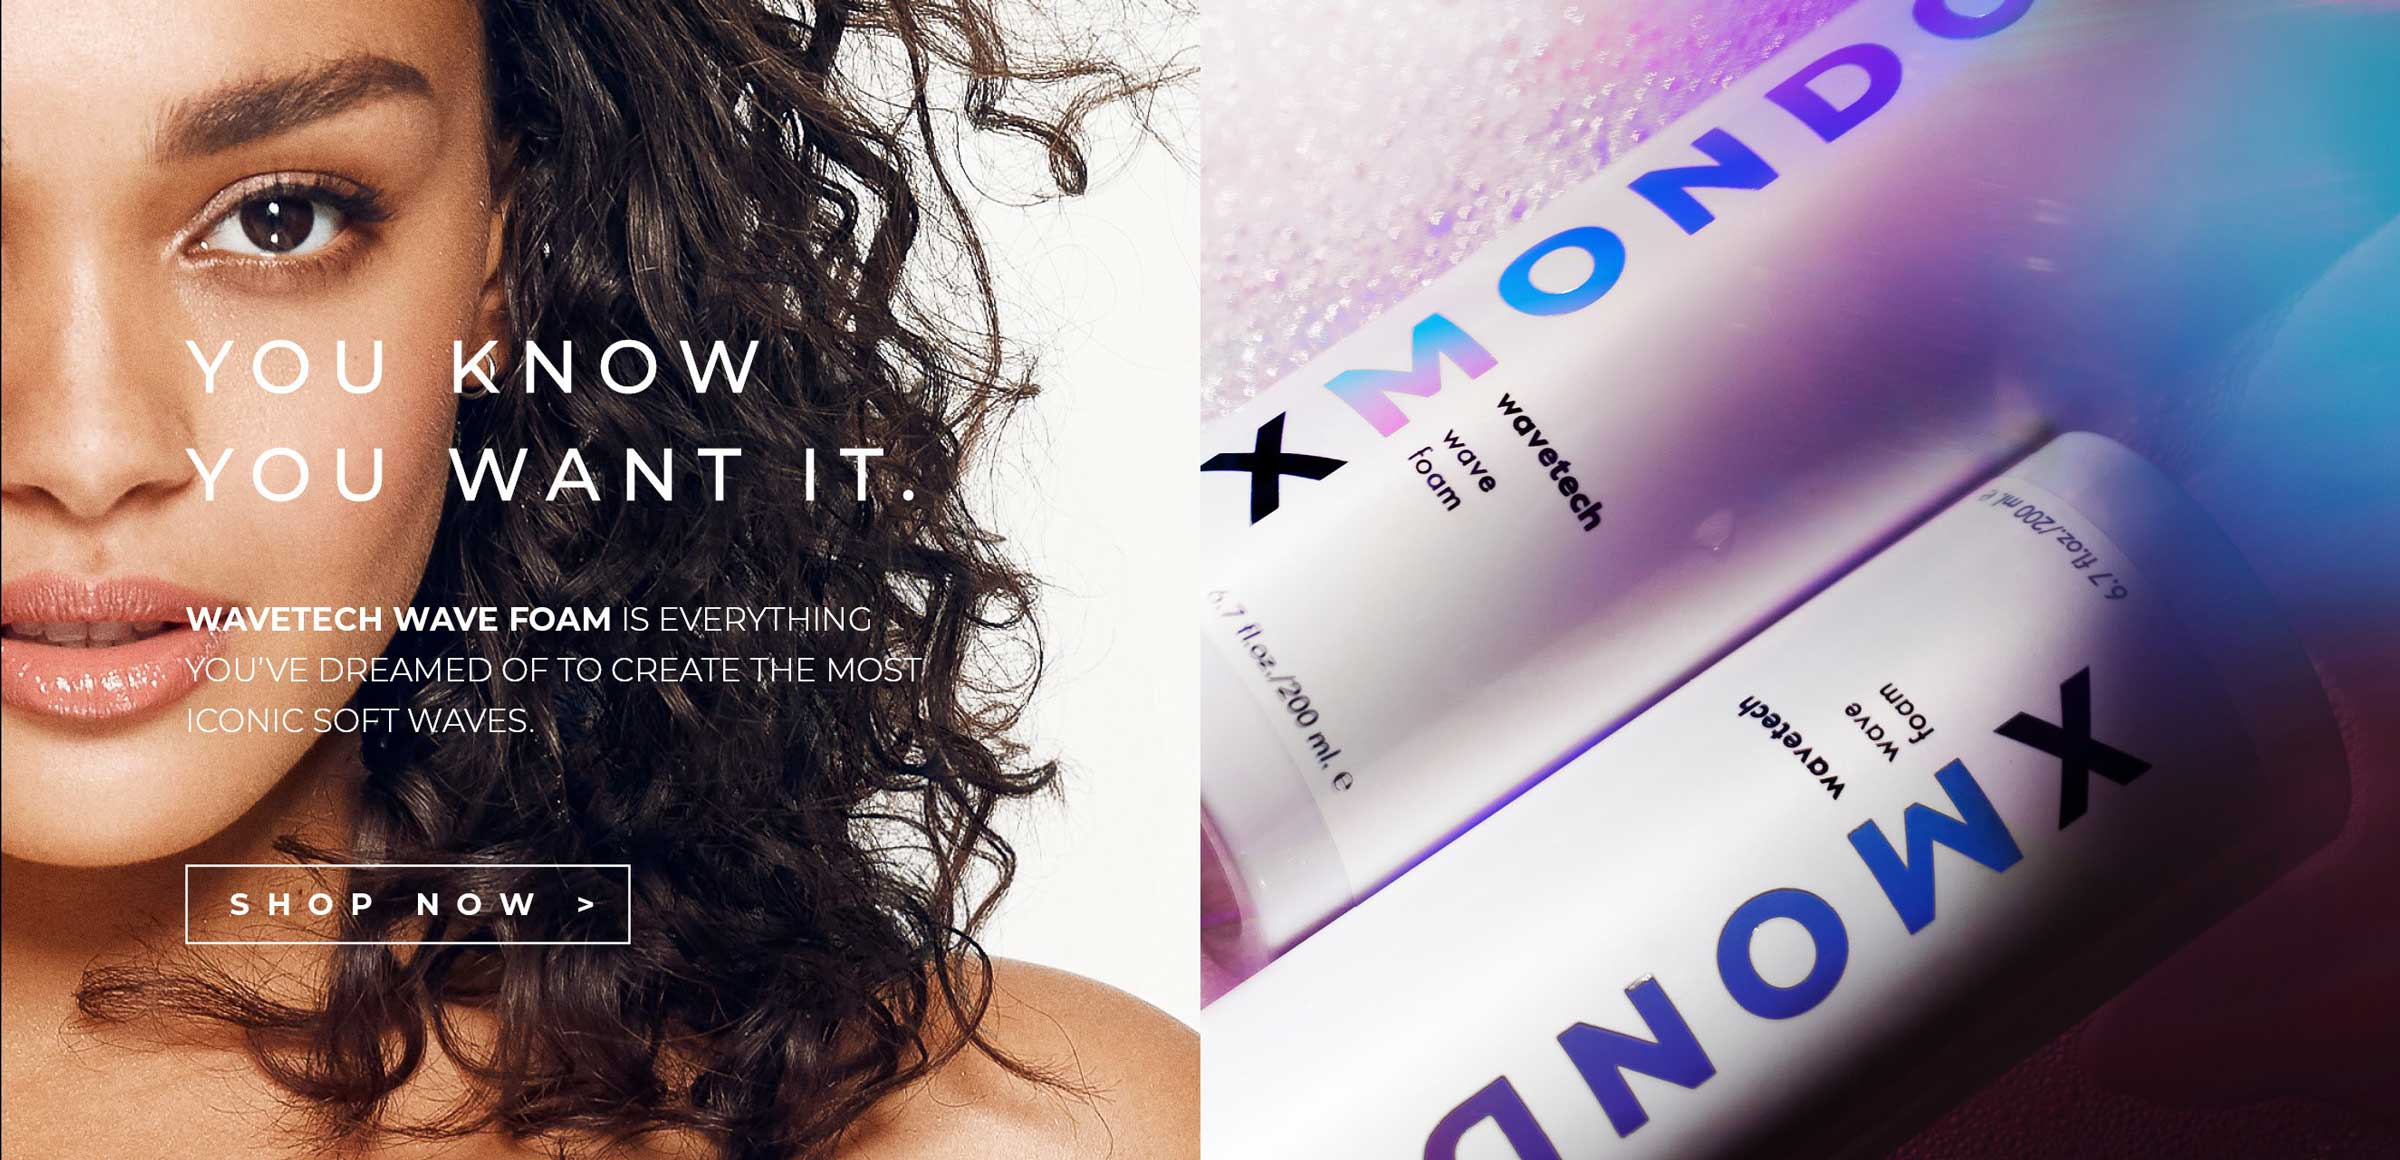 Wavetech Wave Foam is everything you've dreamed of to create the most iconic soft waves.